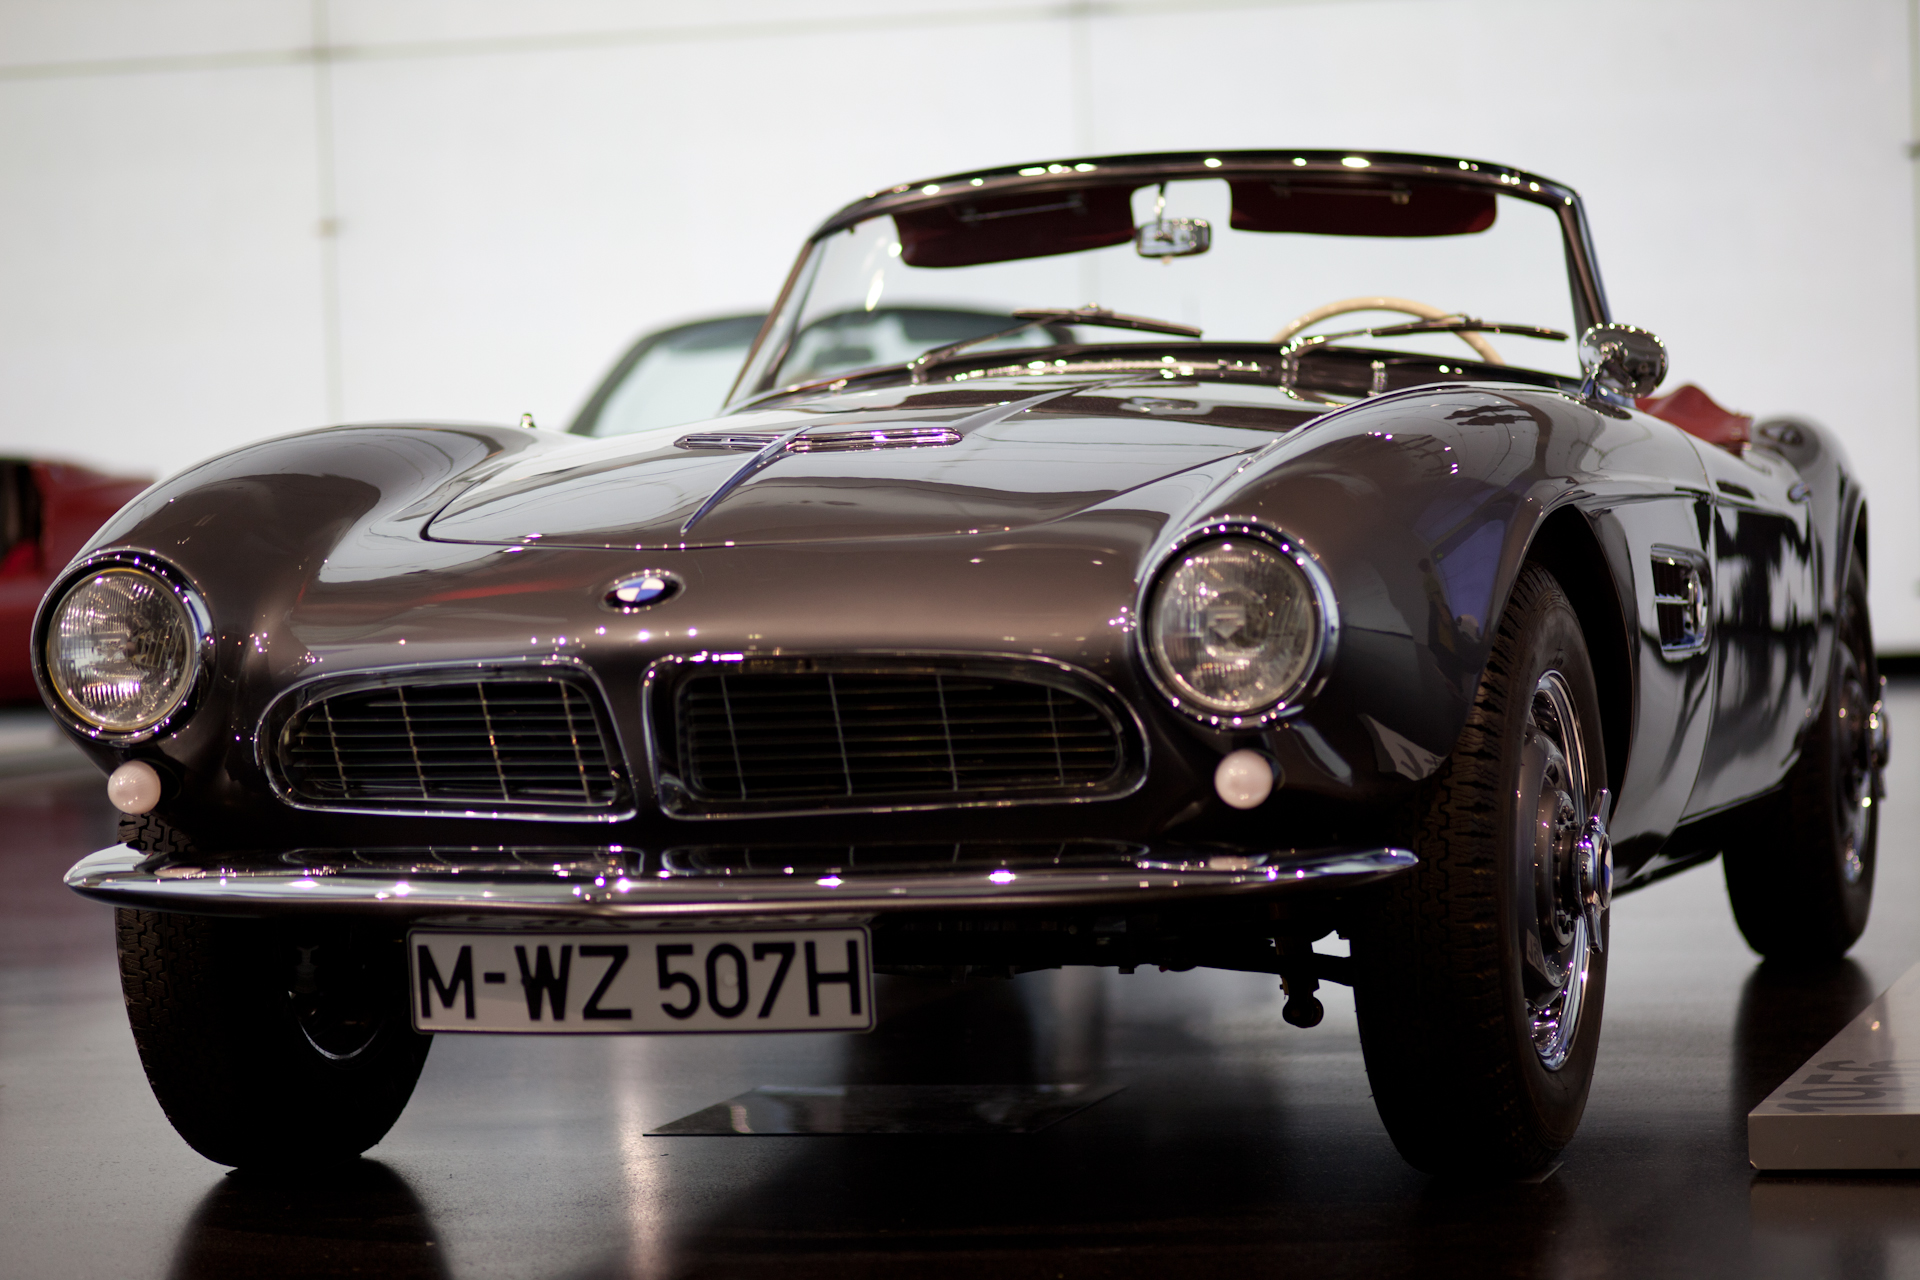 BMW Roadster 507 | 111007-3136-jikatu | Flickr - Photo Sharing!